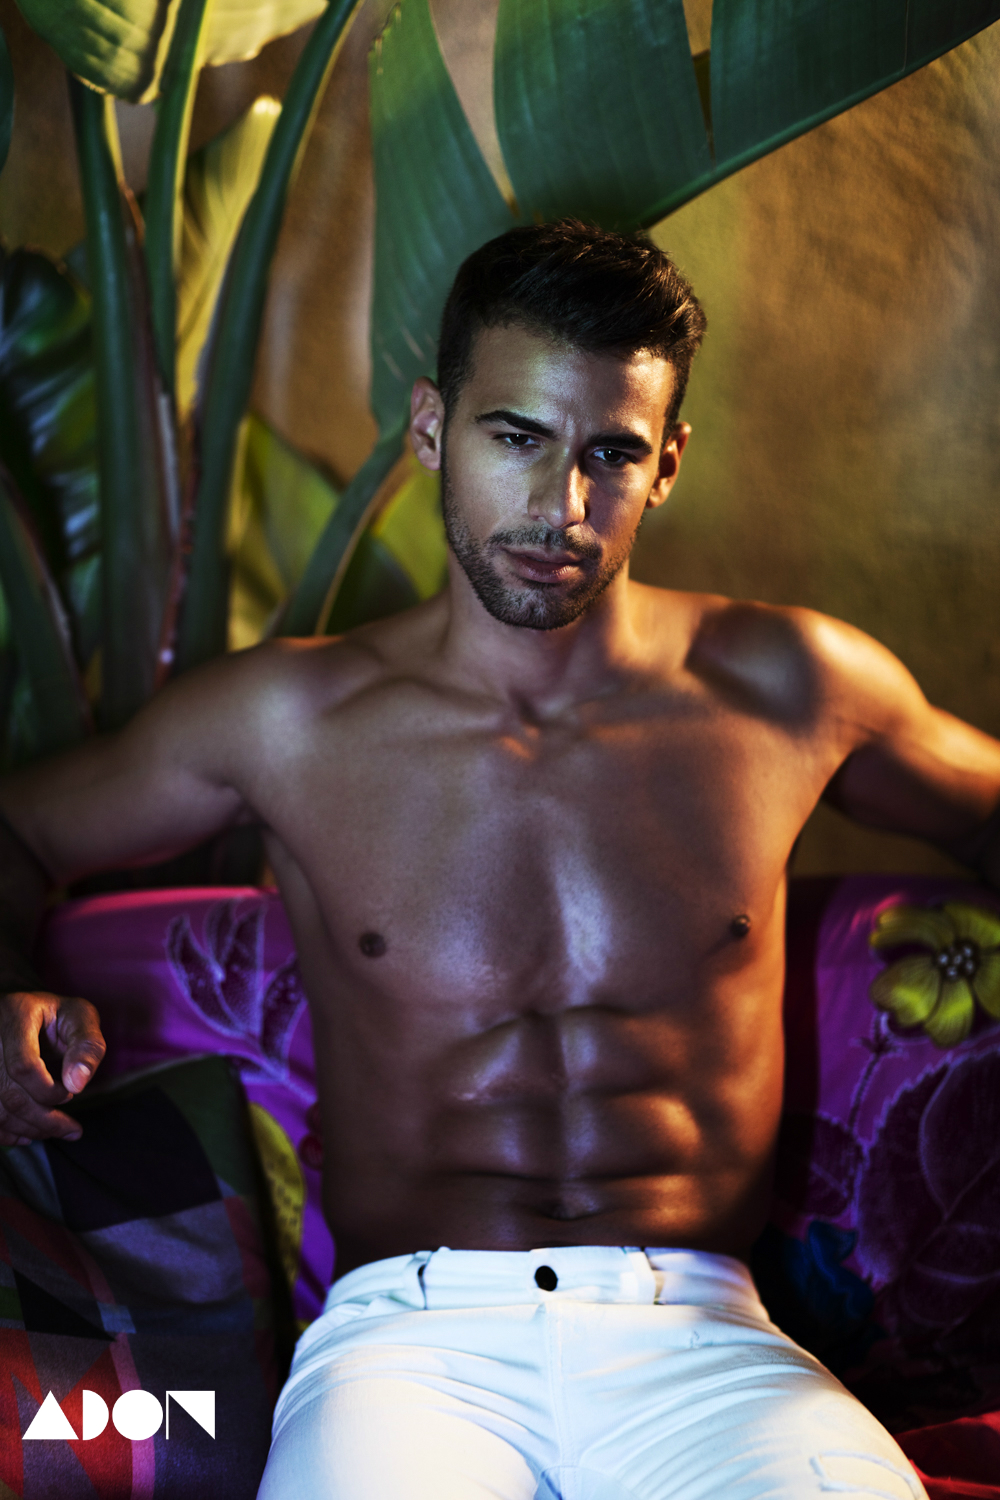 Adon Exclusive: Model Ben Fernandez By Braden Summers